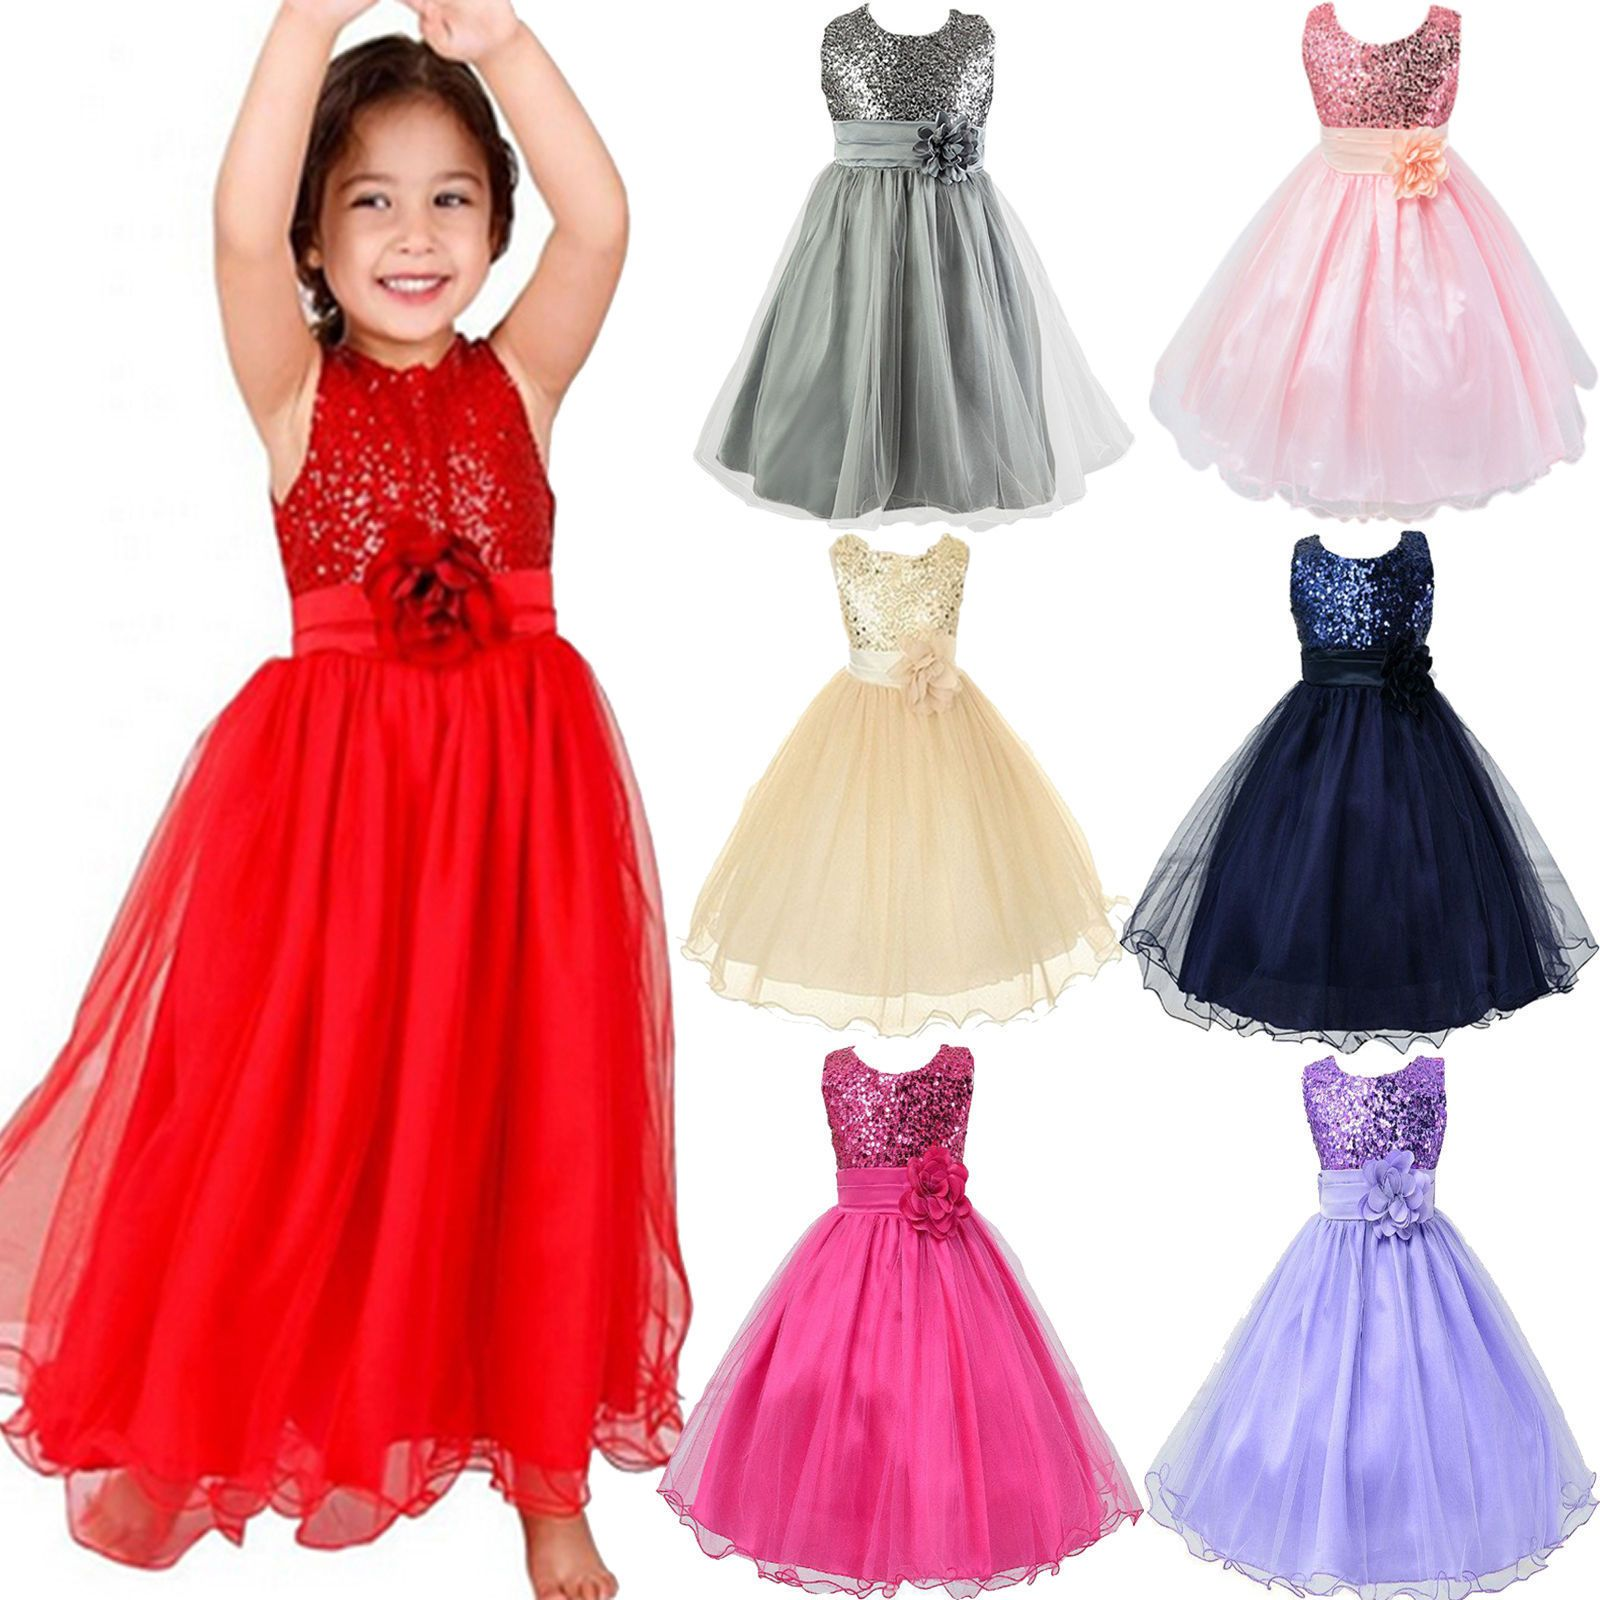 Cool amazing kids girls formal prom gown wedding bridesmaid dress